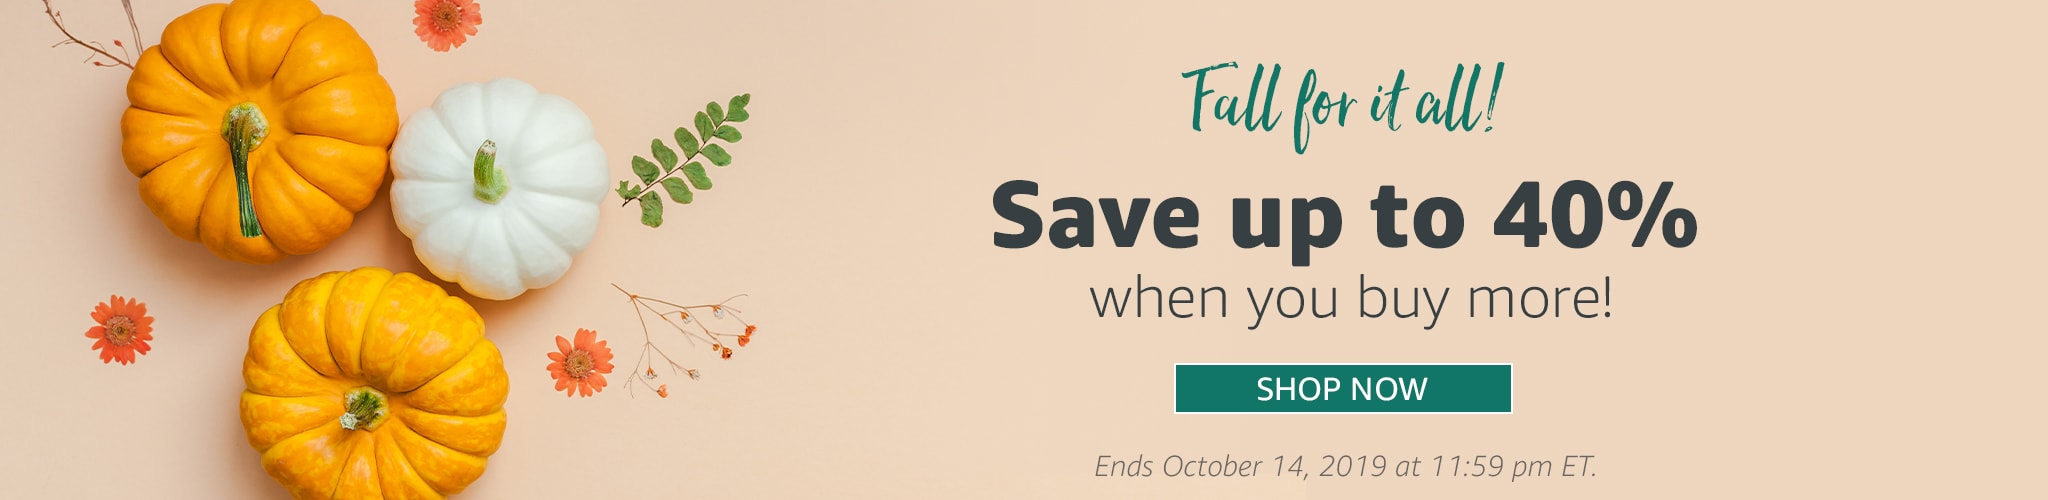 Fall for it all sale